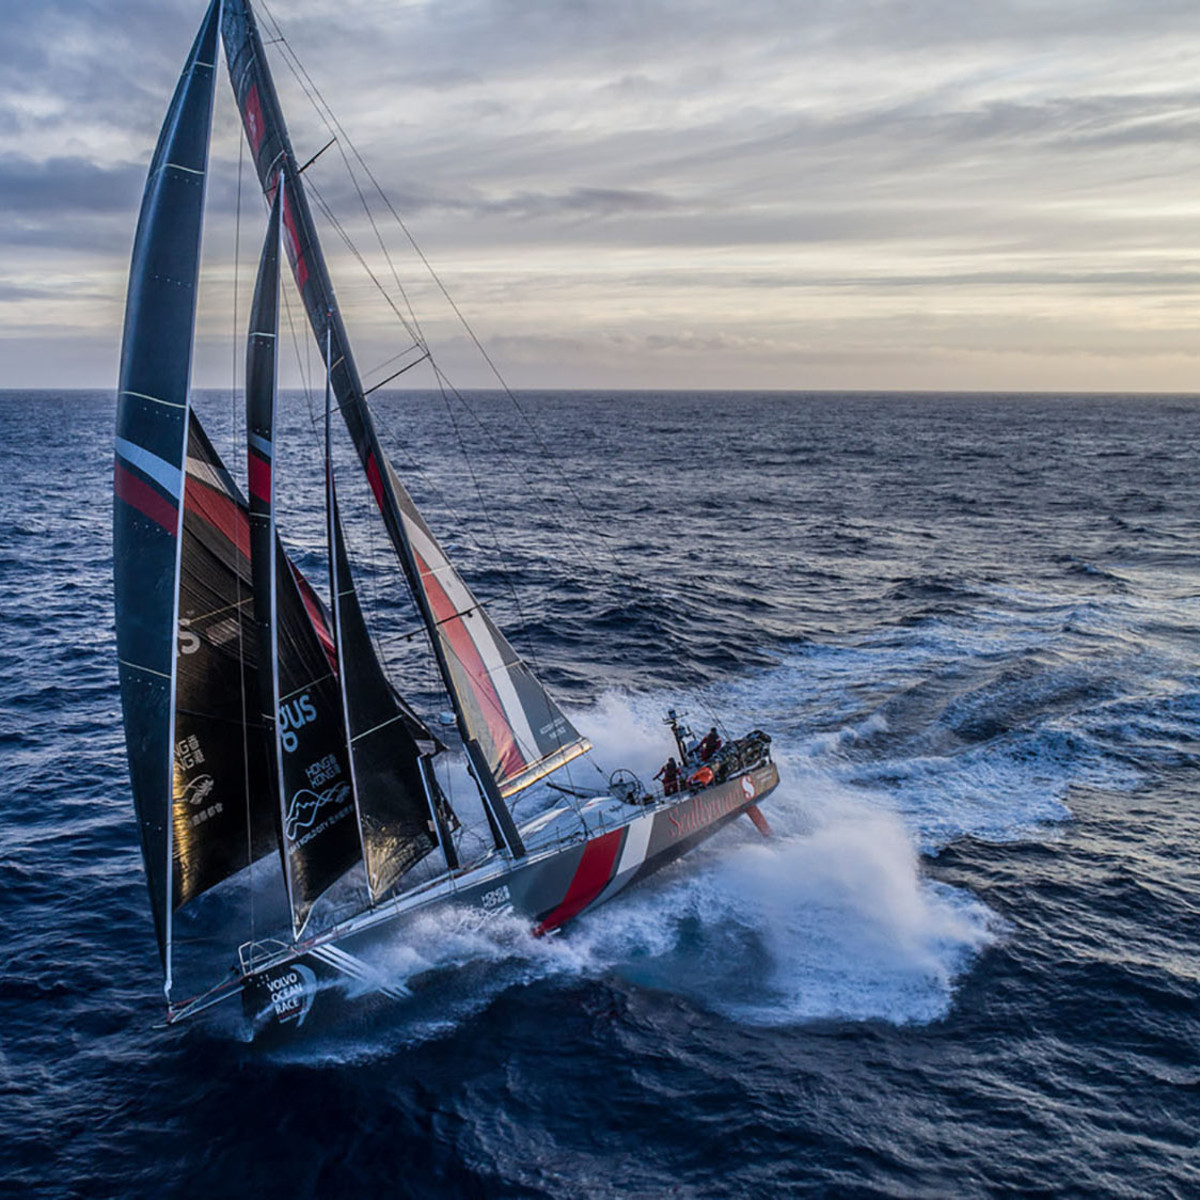 Leg 7 from Auckland to Itajai, day 5 on board Sun Hung Kai/Scallywag. Just under 3,000 miles to go until Cape Horn. Still a lot left in this race. 22 March, 2018.